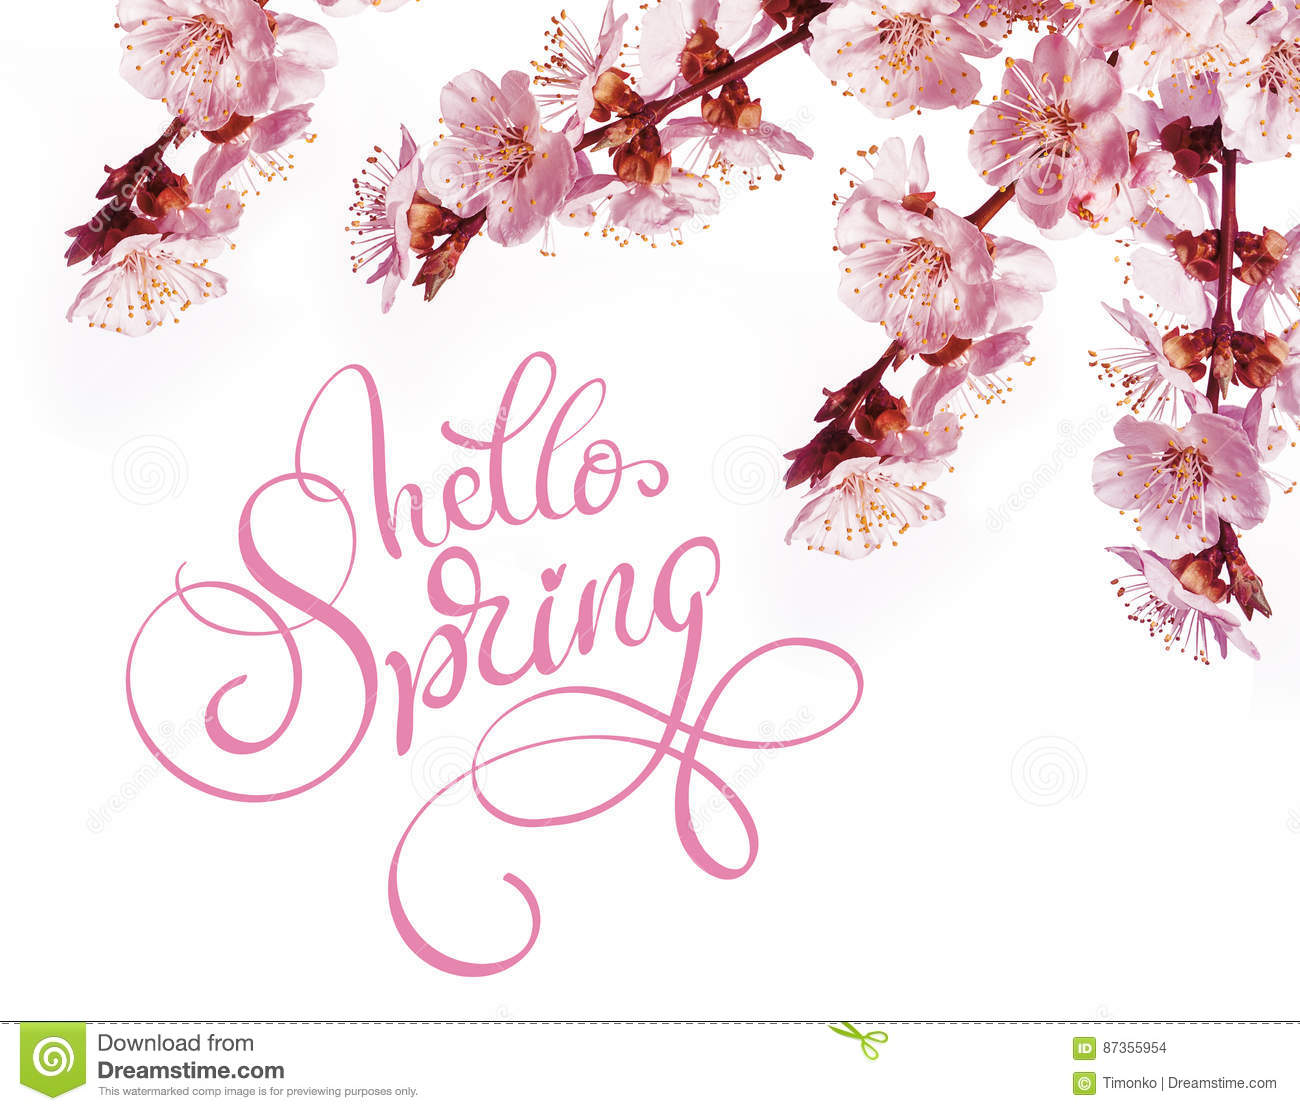 Spring flowers border and text hello calligraphy